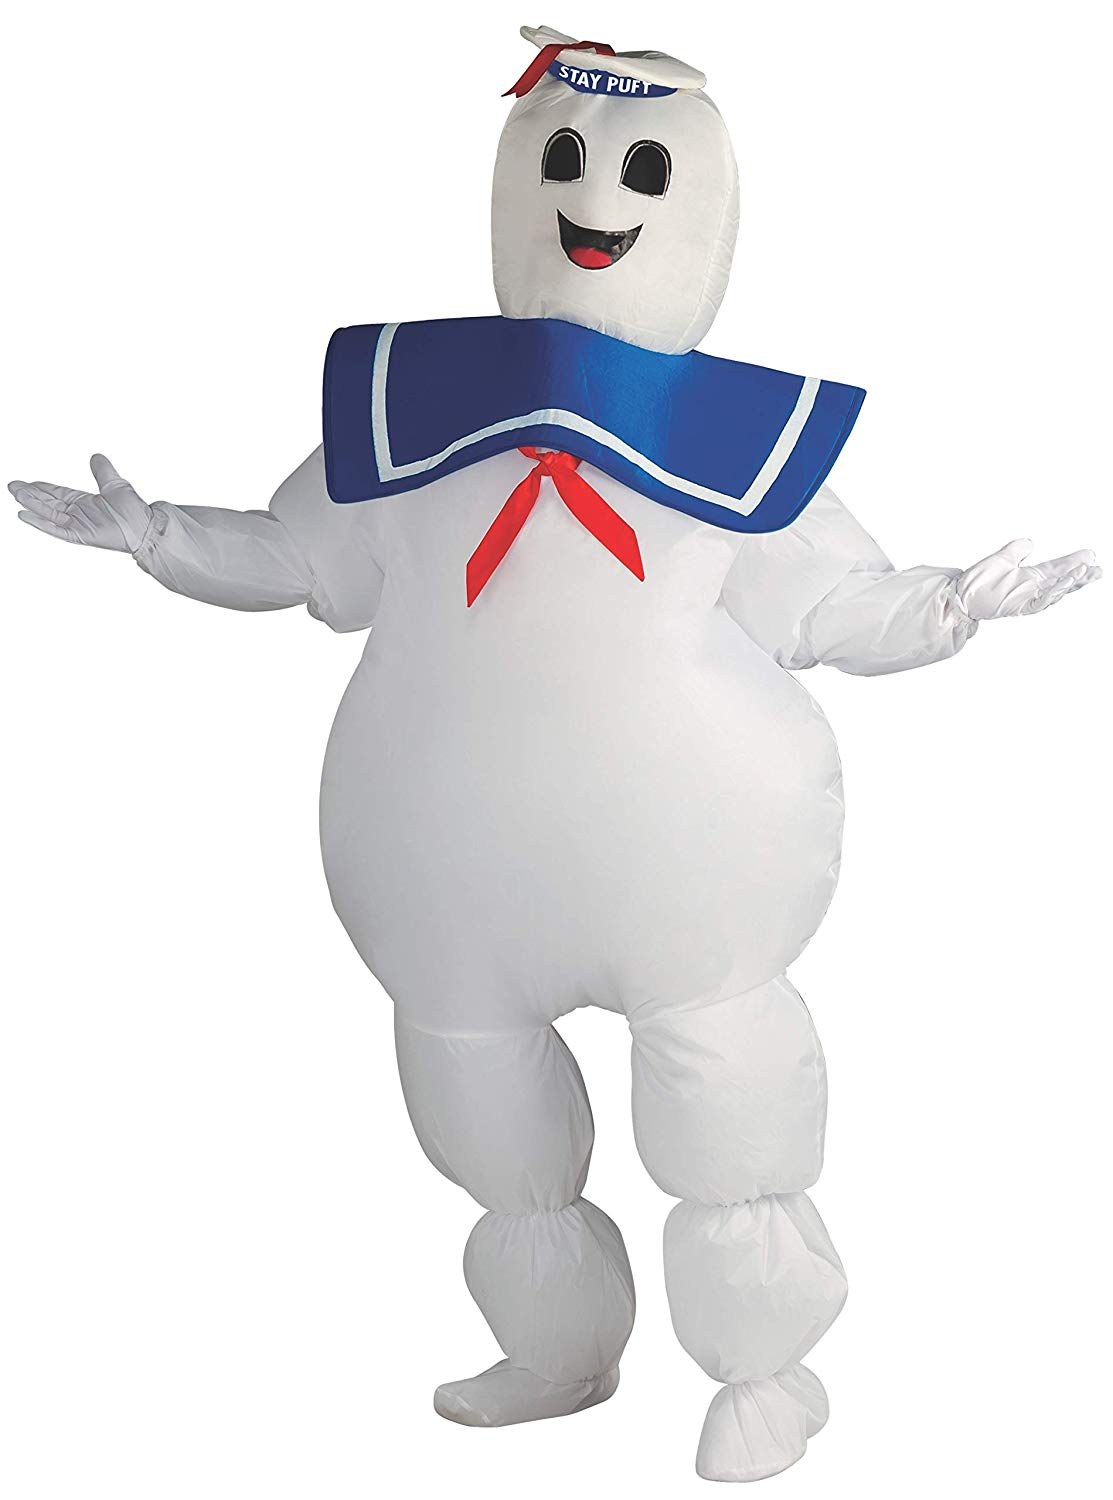 inflatable marshmallow man costume from Ghostbusters